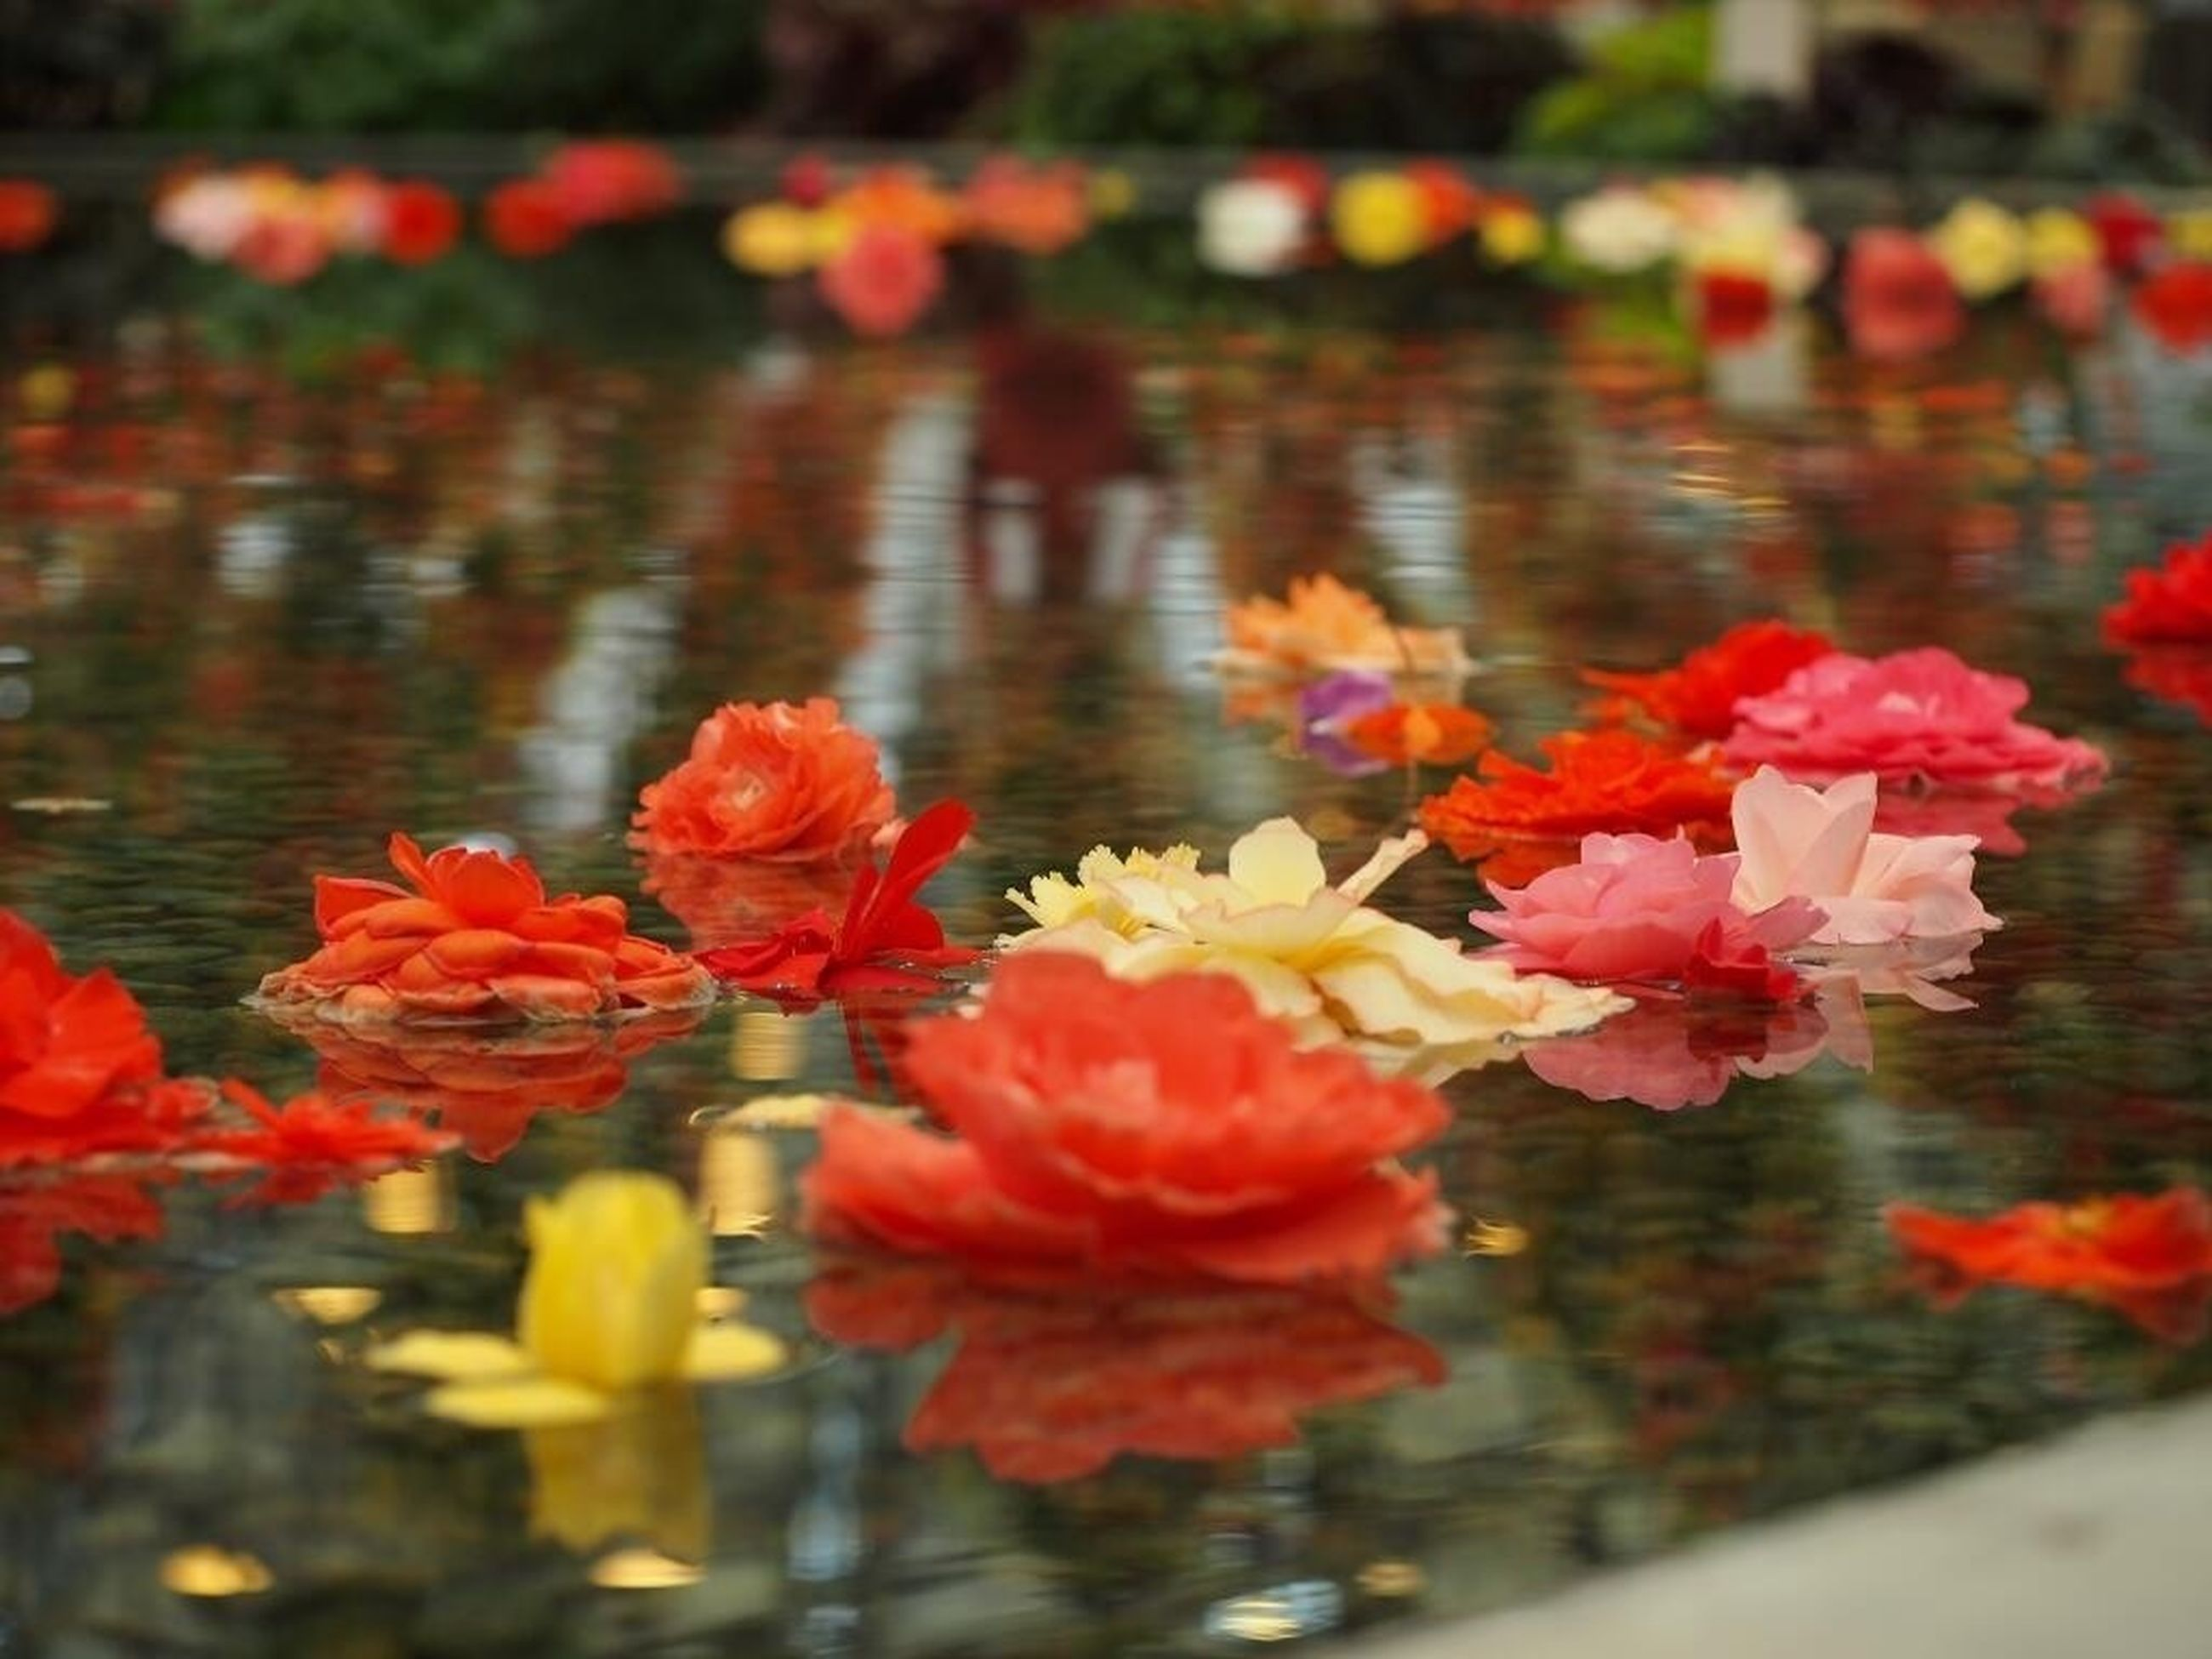 flower, water, red, petal, fragility, freshness, beauty in nature, reflection, nature, focus on foreground, flower head, growth, pond, blooming, pink color, plant, lake, close-up, floating on water, outdoors